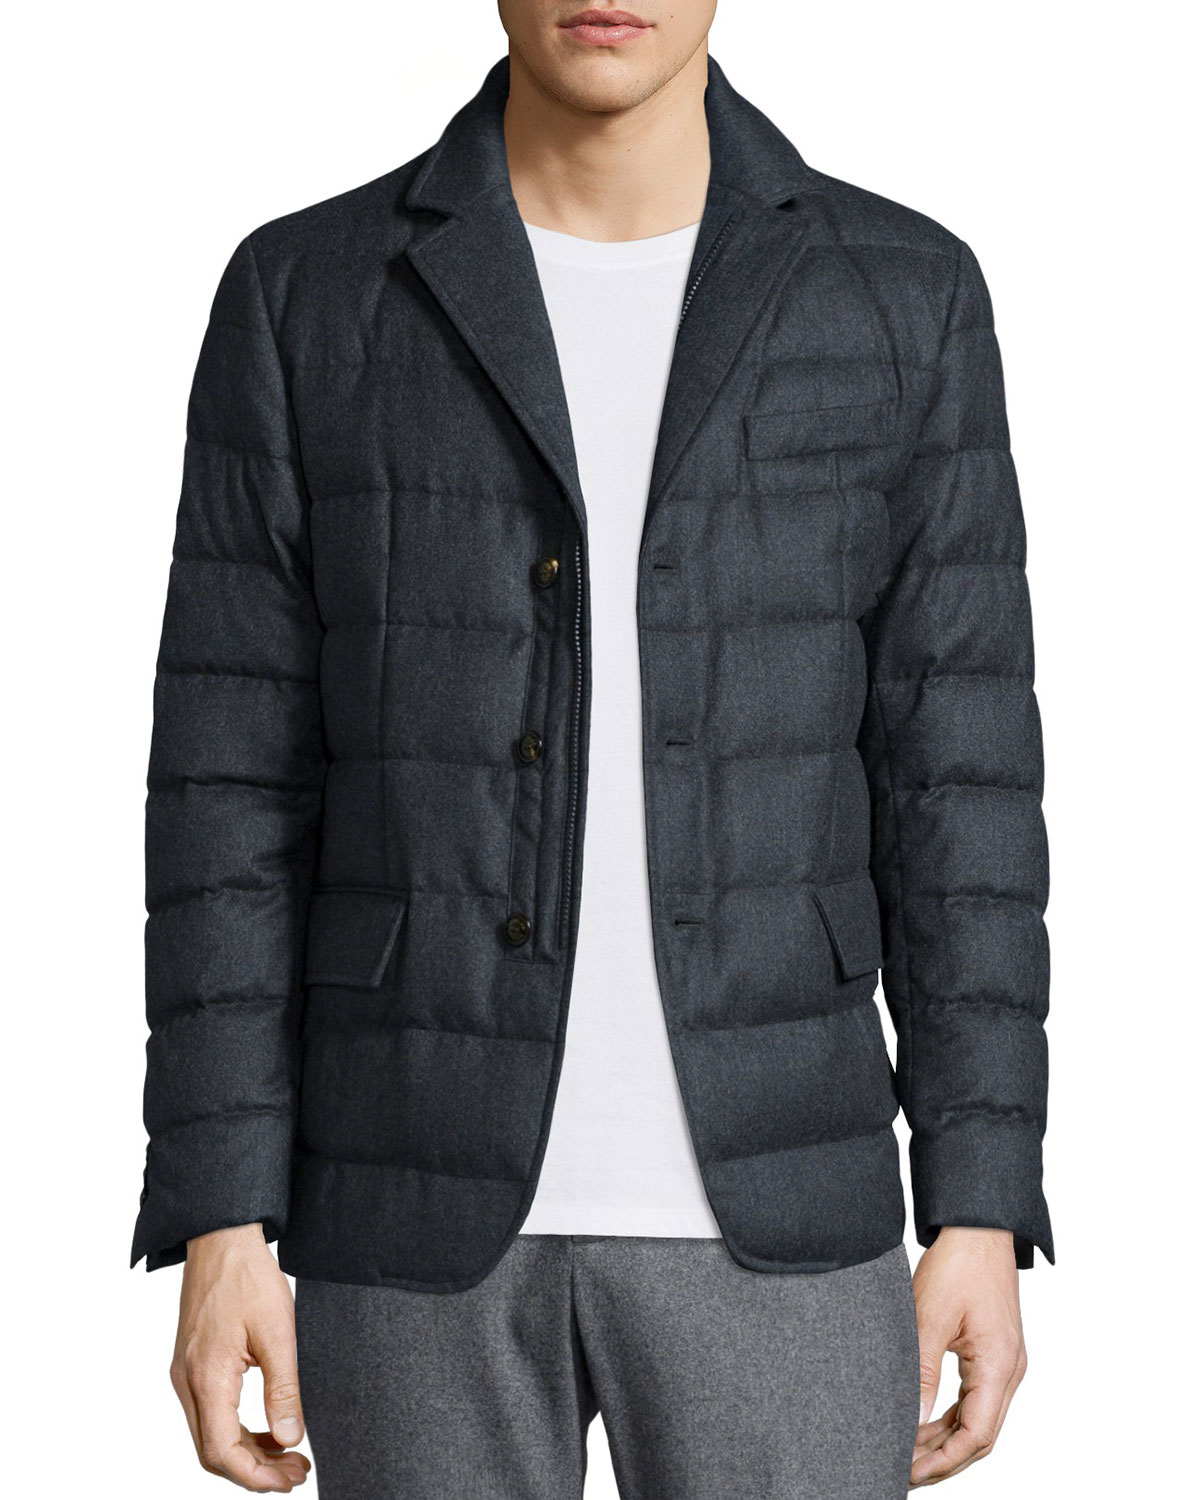 Jackets: Free Shipping on orders over $45 at comfoisinsi.tk - Your Online Jackets Store! Get 5% in rewards with Club O! Men's Leather Snap-collar Jacket with Quilted Shoulders. Seduka Men's Jacket - Contemporary, Casual, Sportswear Military Style Peacoat. Quick View. See Price in Cart.